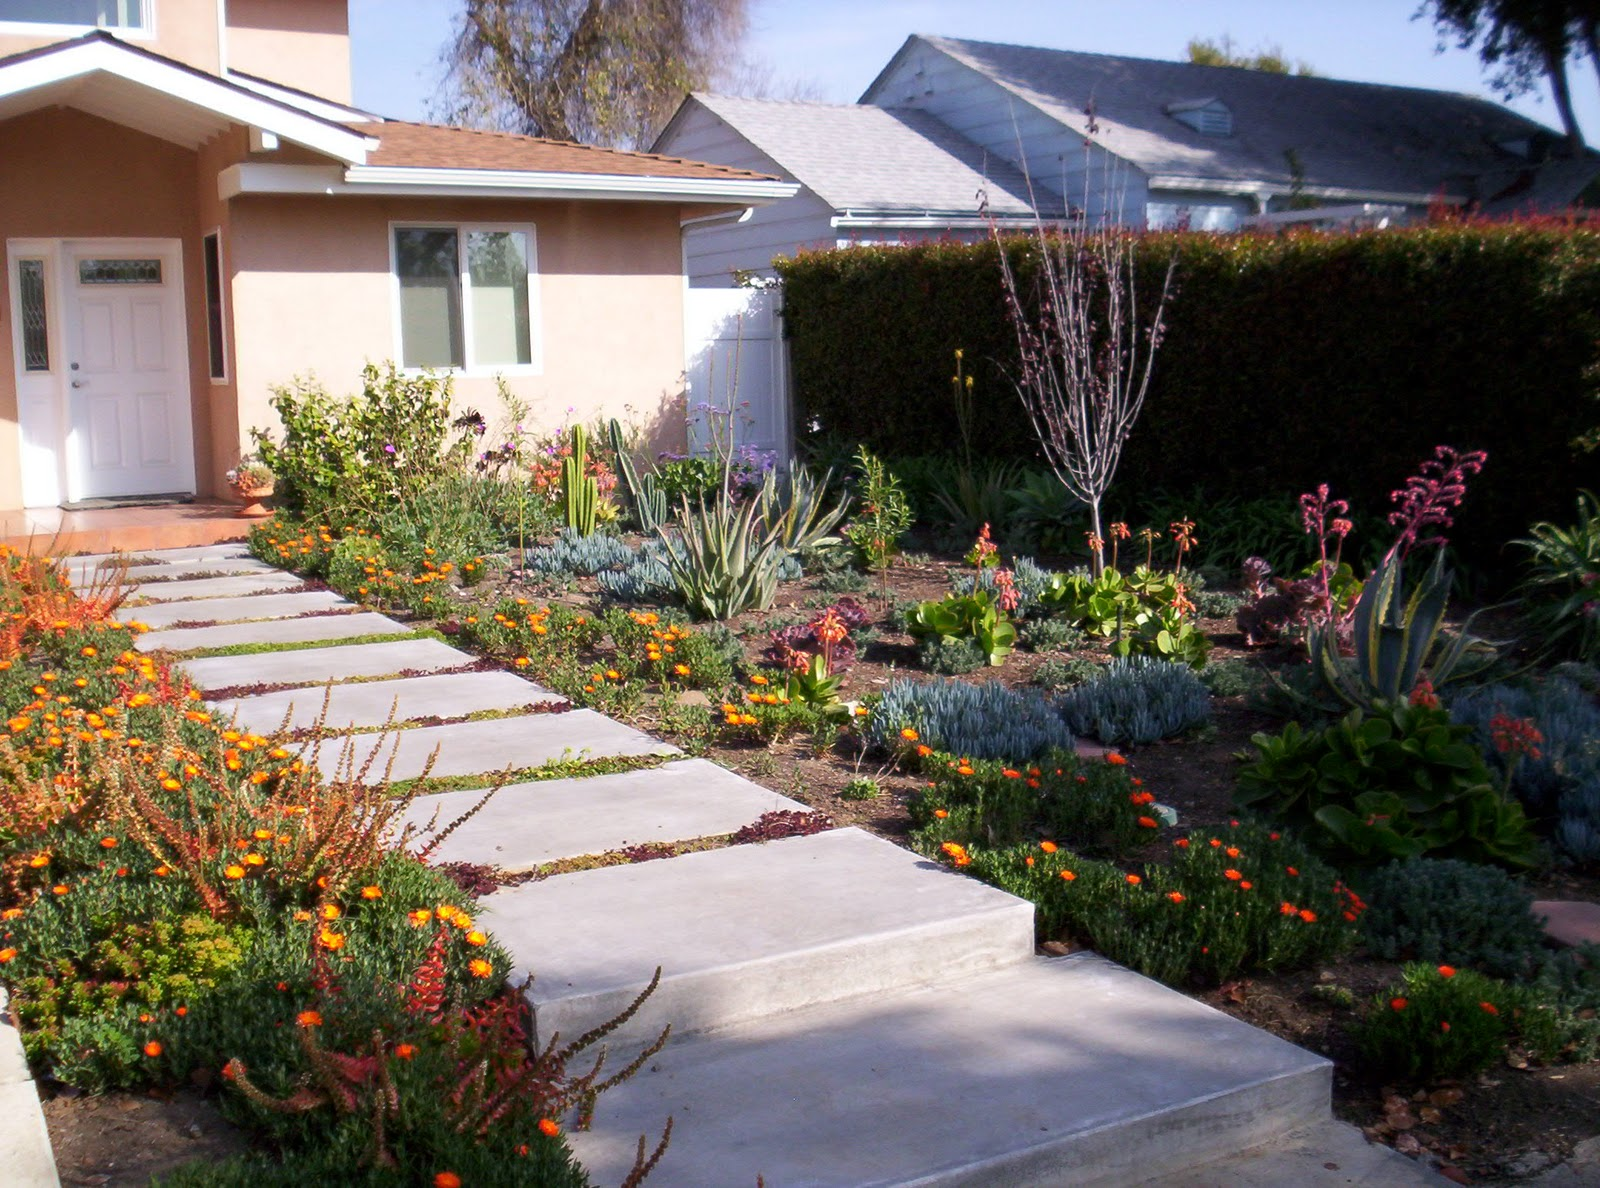 Mar Vista Green Garden Showcase January 2012